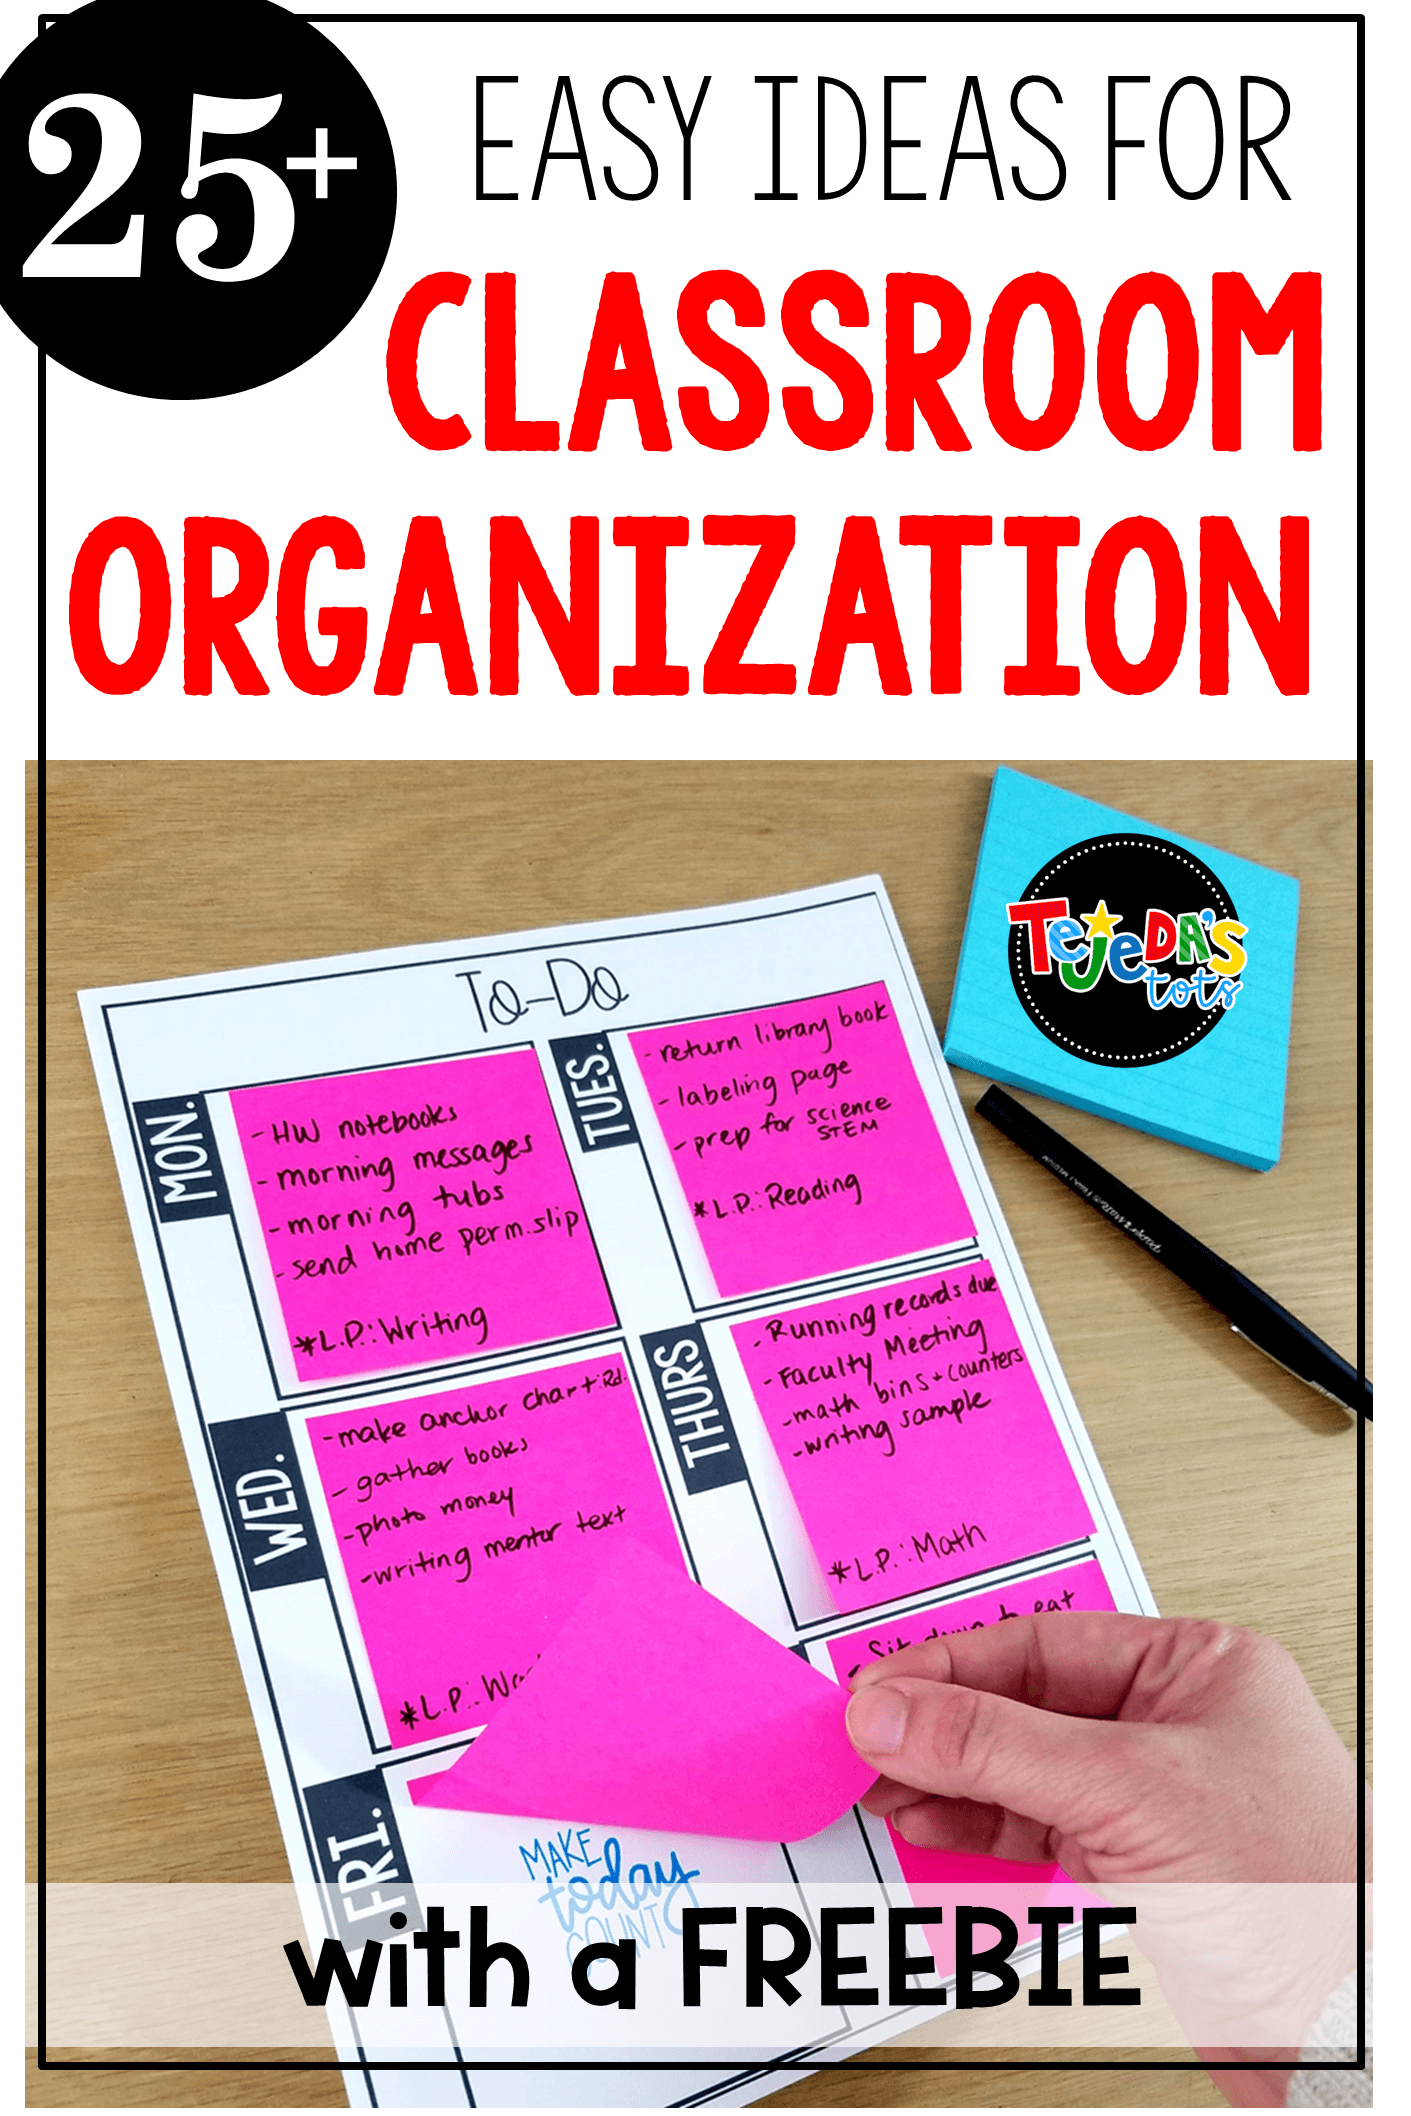 25+ Classroom Organization Tips For the New Year